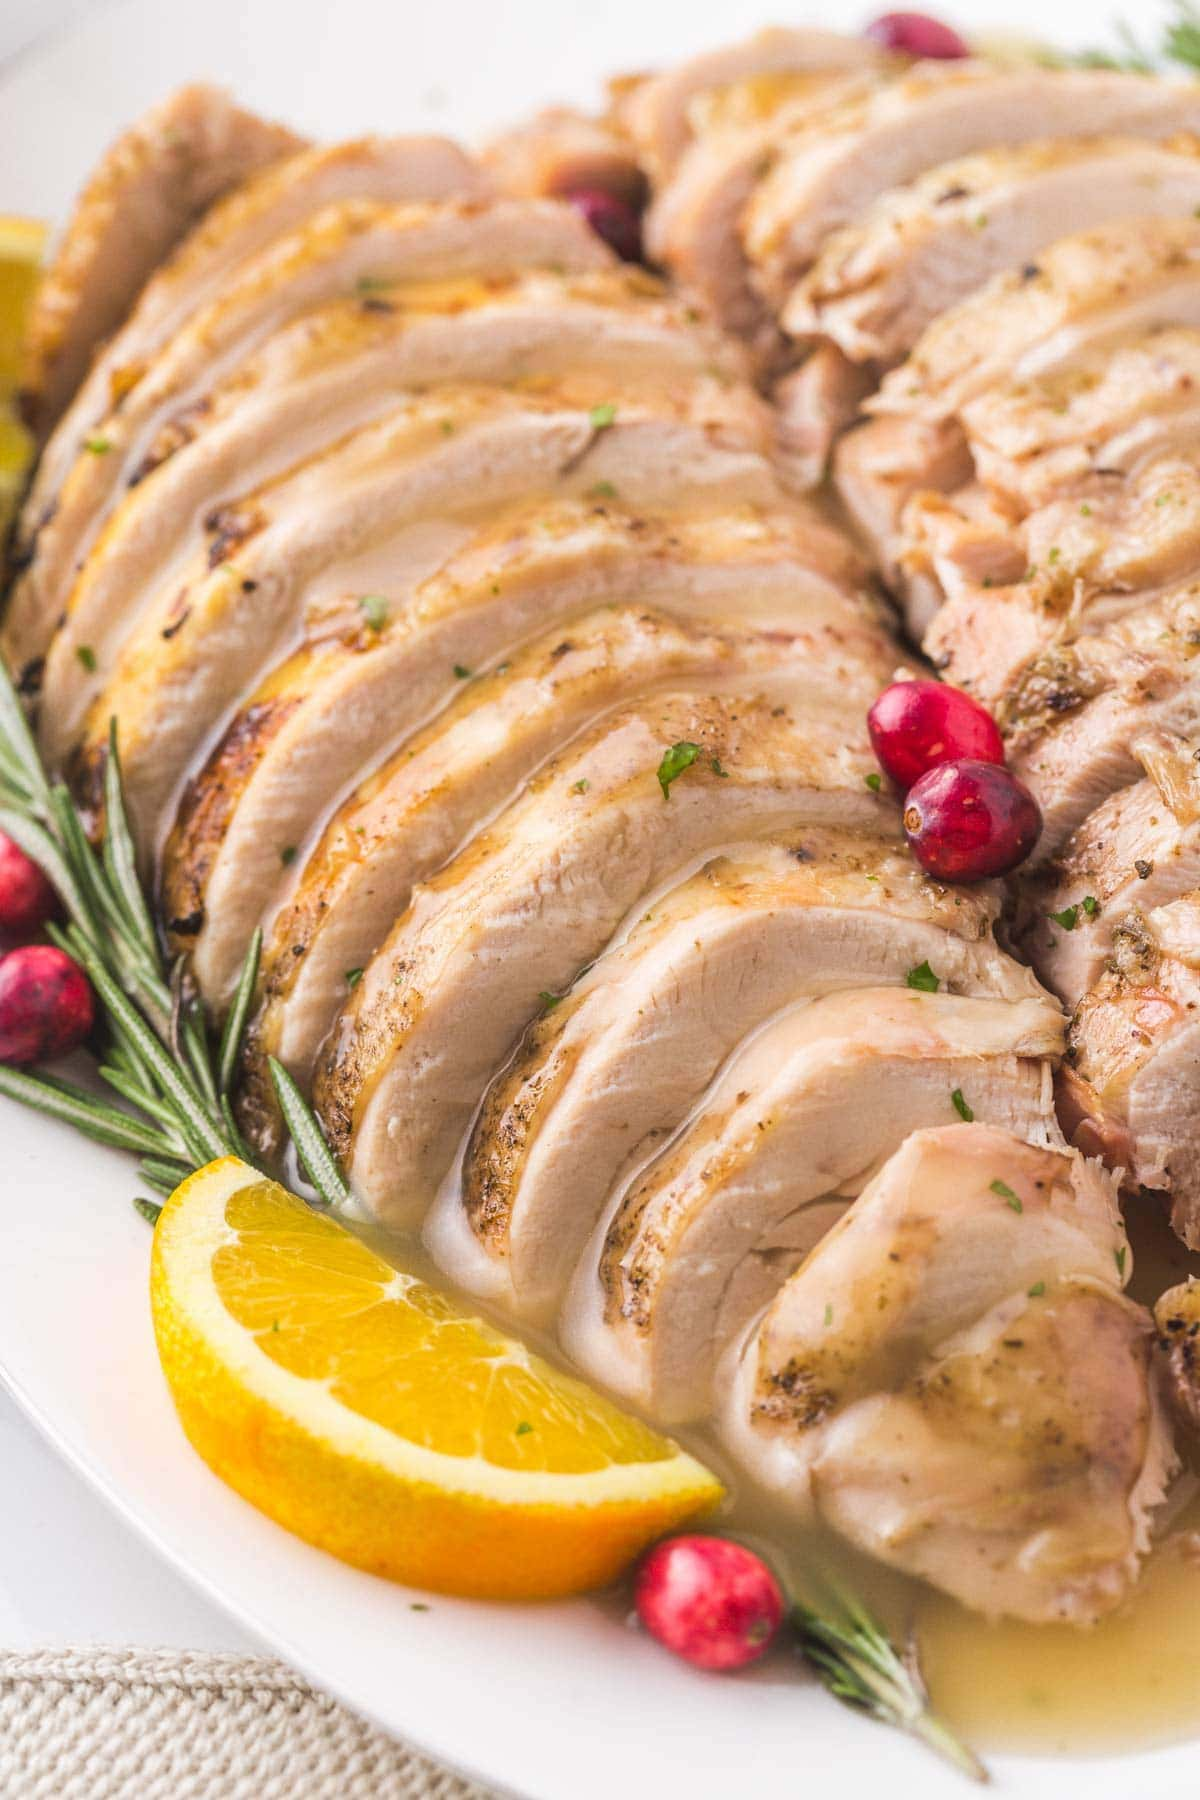 Close up of a sliced turkey breast with gravy